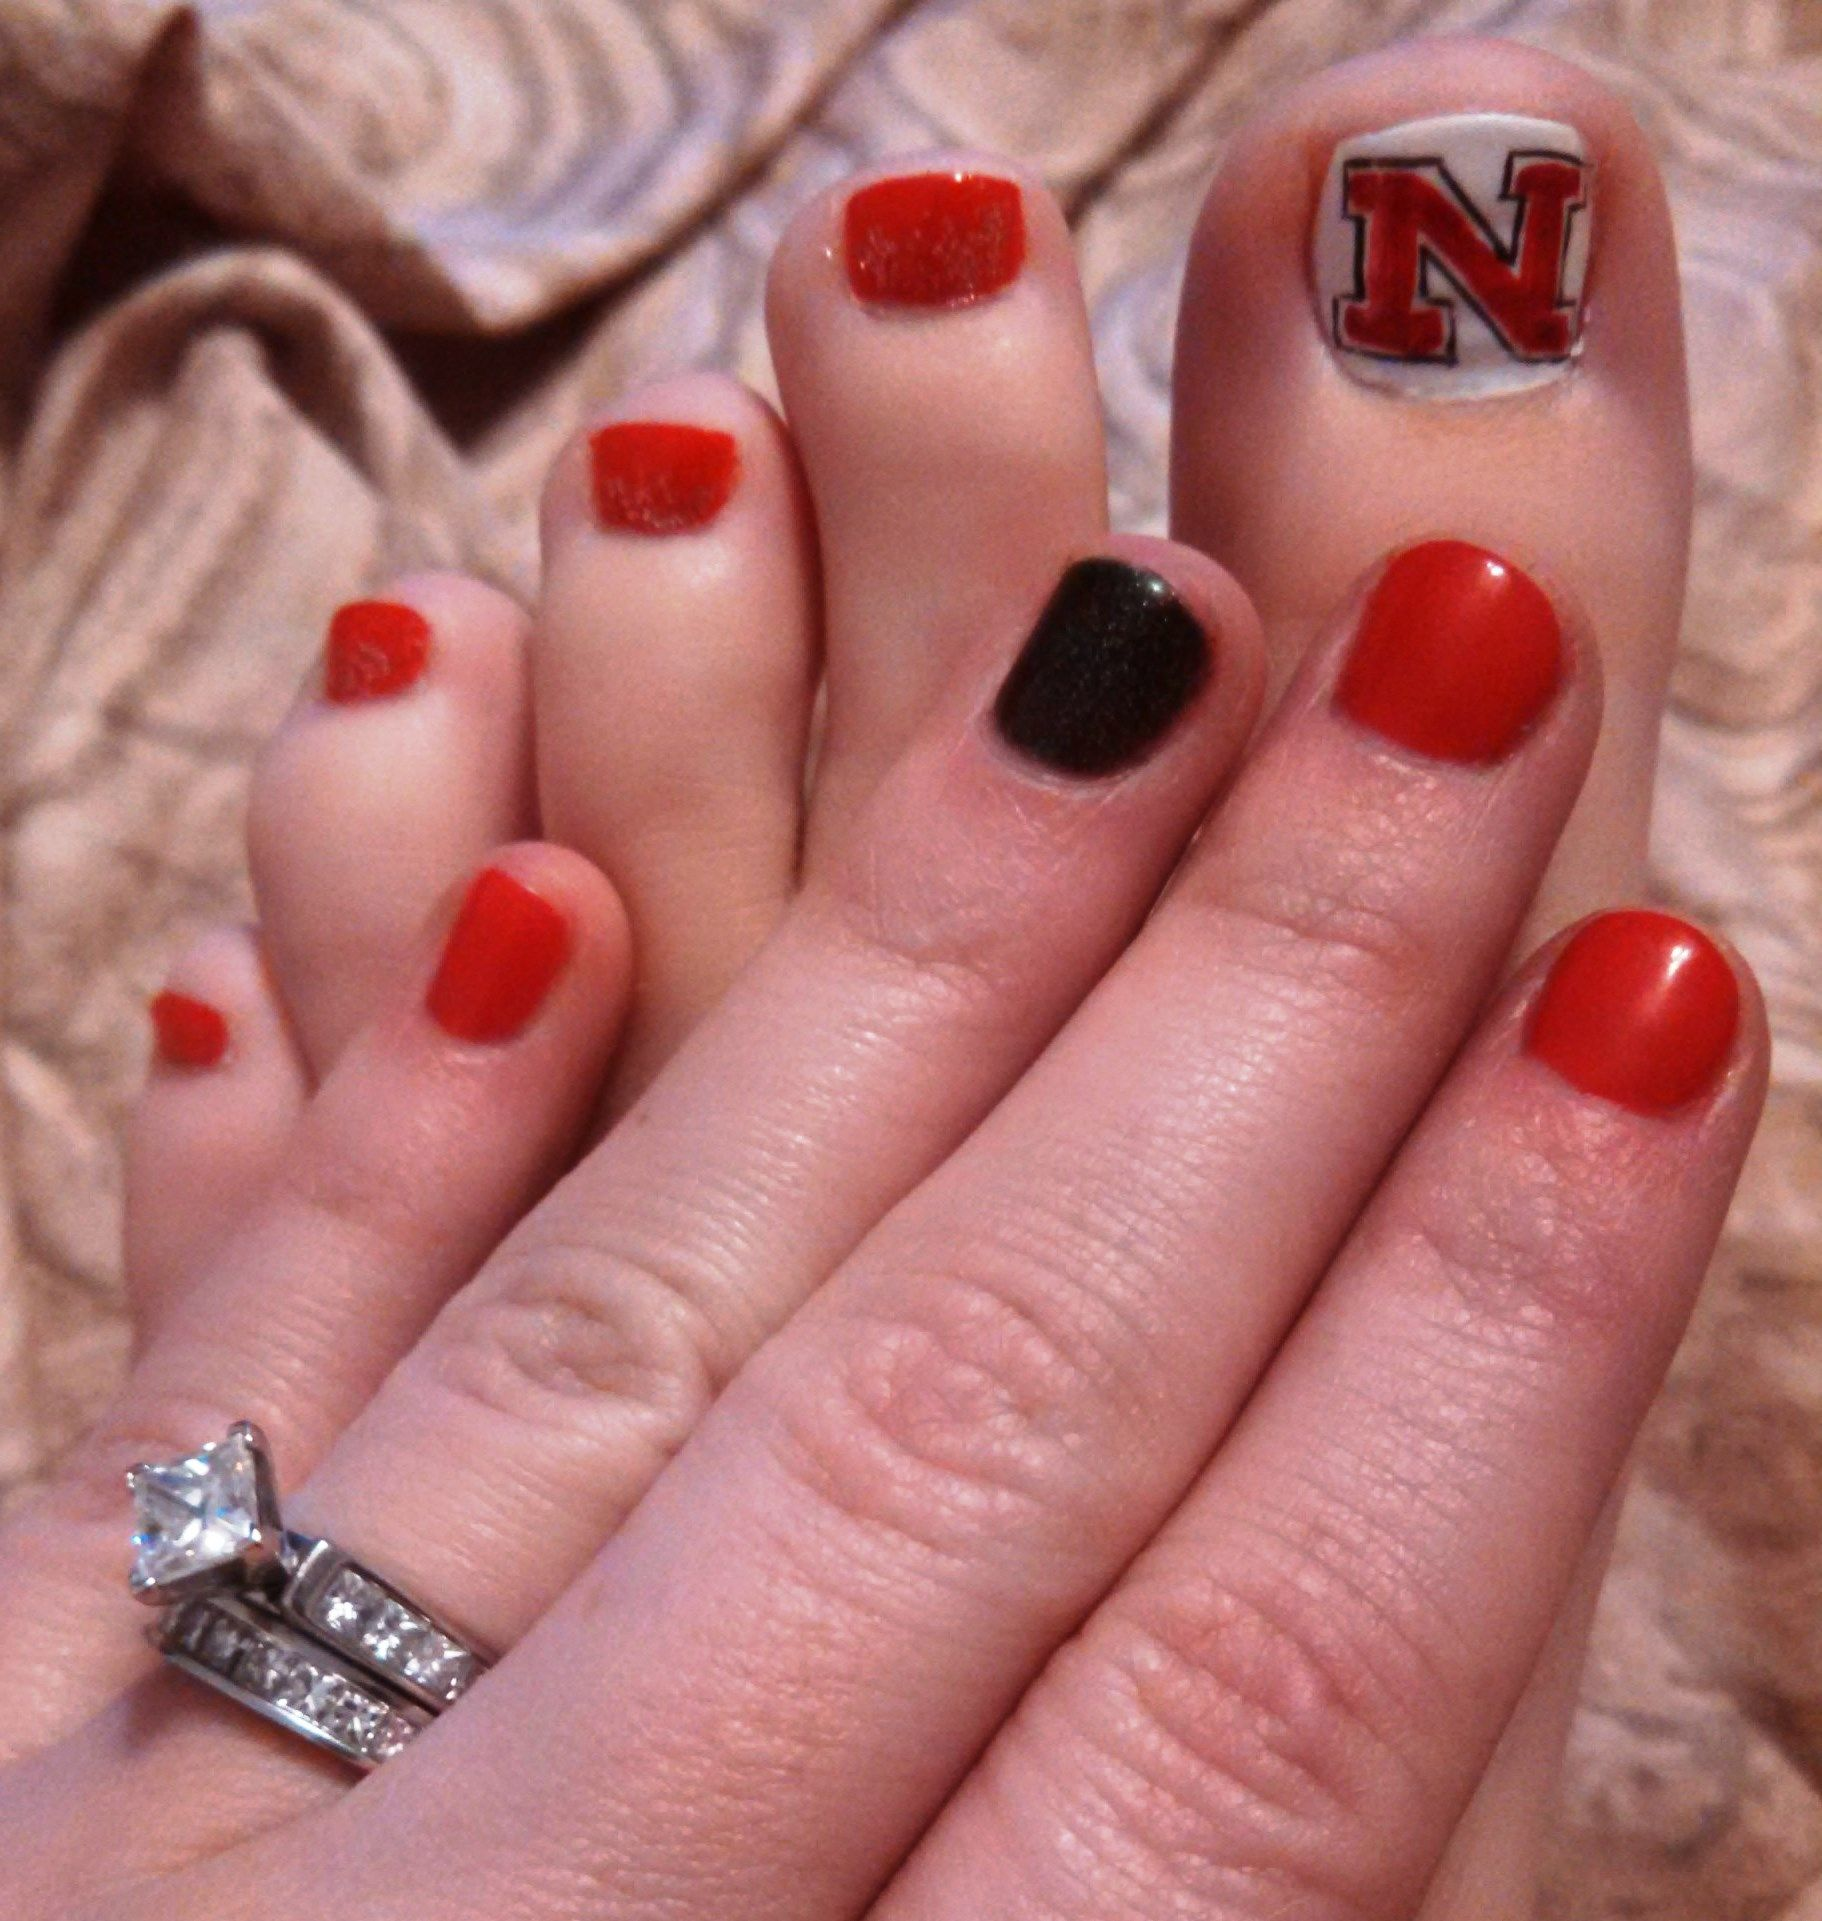 Ready for game day! #GBR #Huskers #Nails